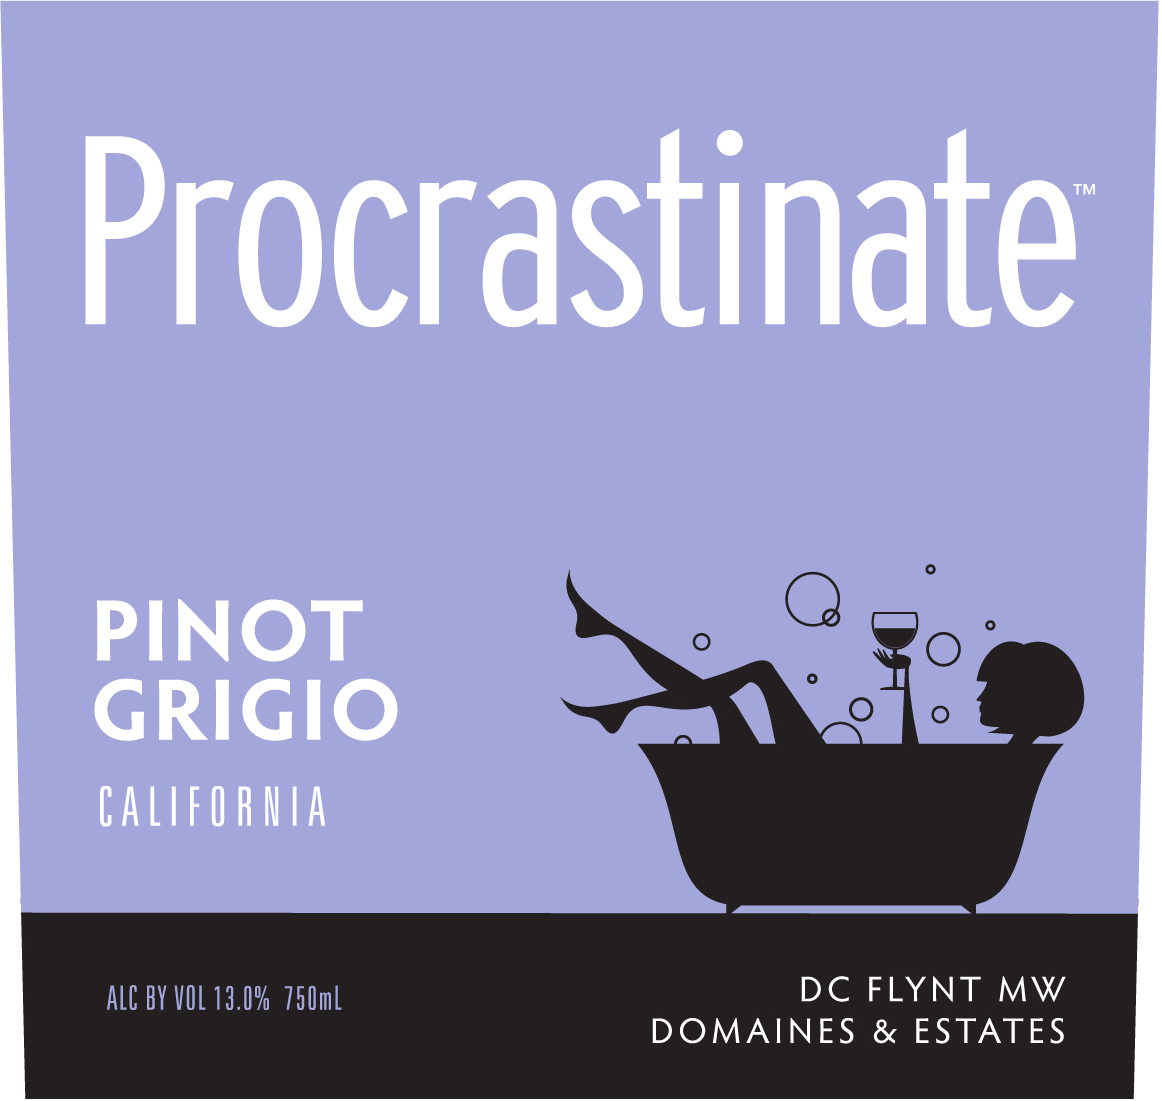 Once they got around to it, our winemakers employed sustainable practices in the vineyard and in the winery to produce this top-quality Pinot Grigio.  The final blend was carefully selected to enhance the body, fill out the mid-palate, lift the bright citrus finish, add white floral aromas plus hints of sweet orange blossom.